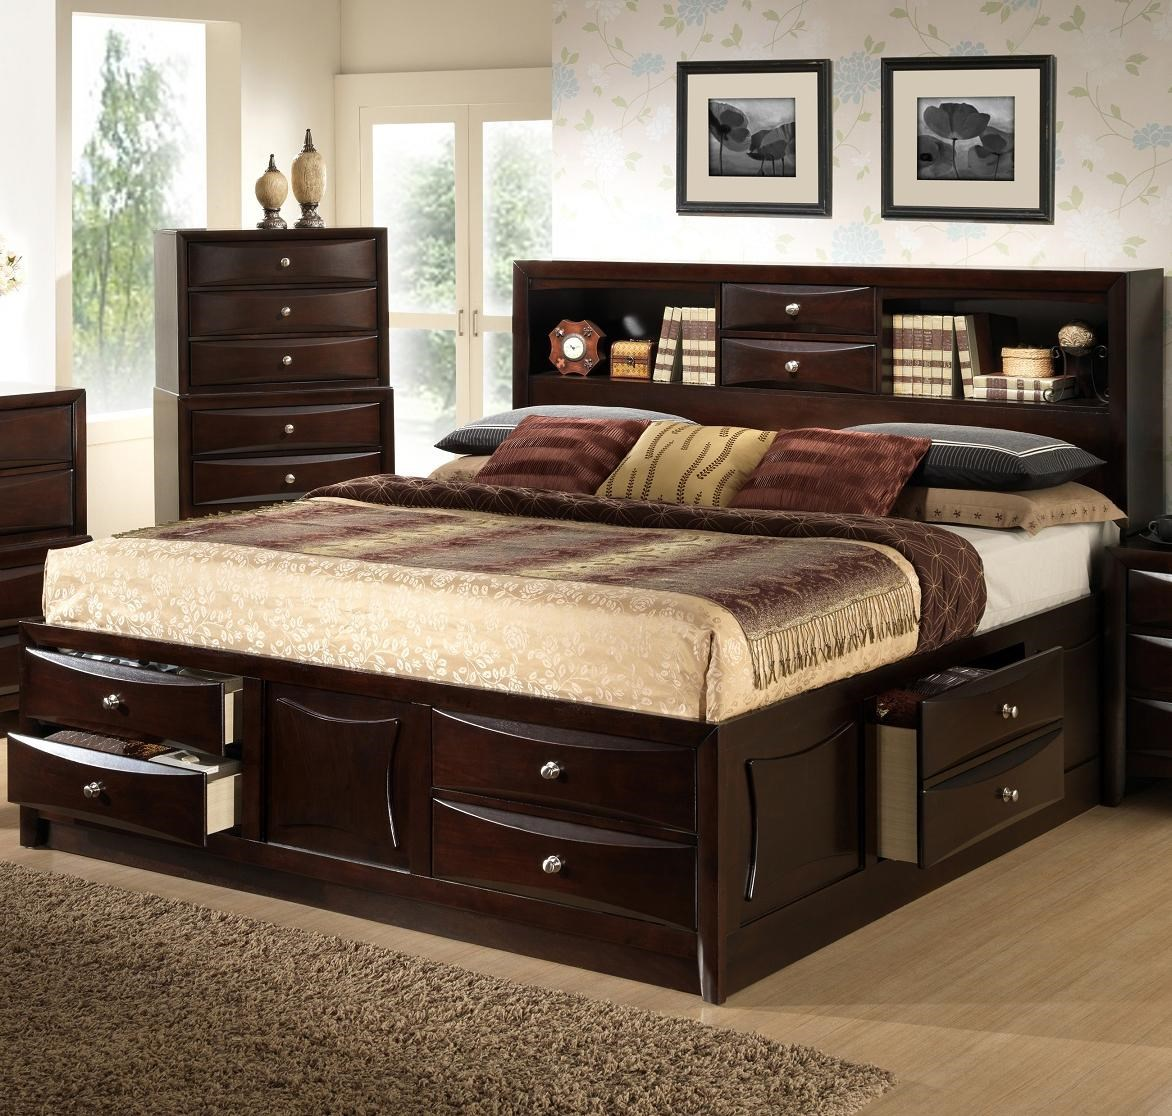 Bon Lifestyle ToddKing/ California King Storage Bed